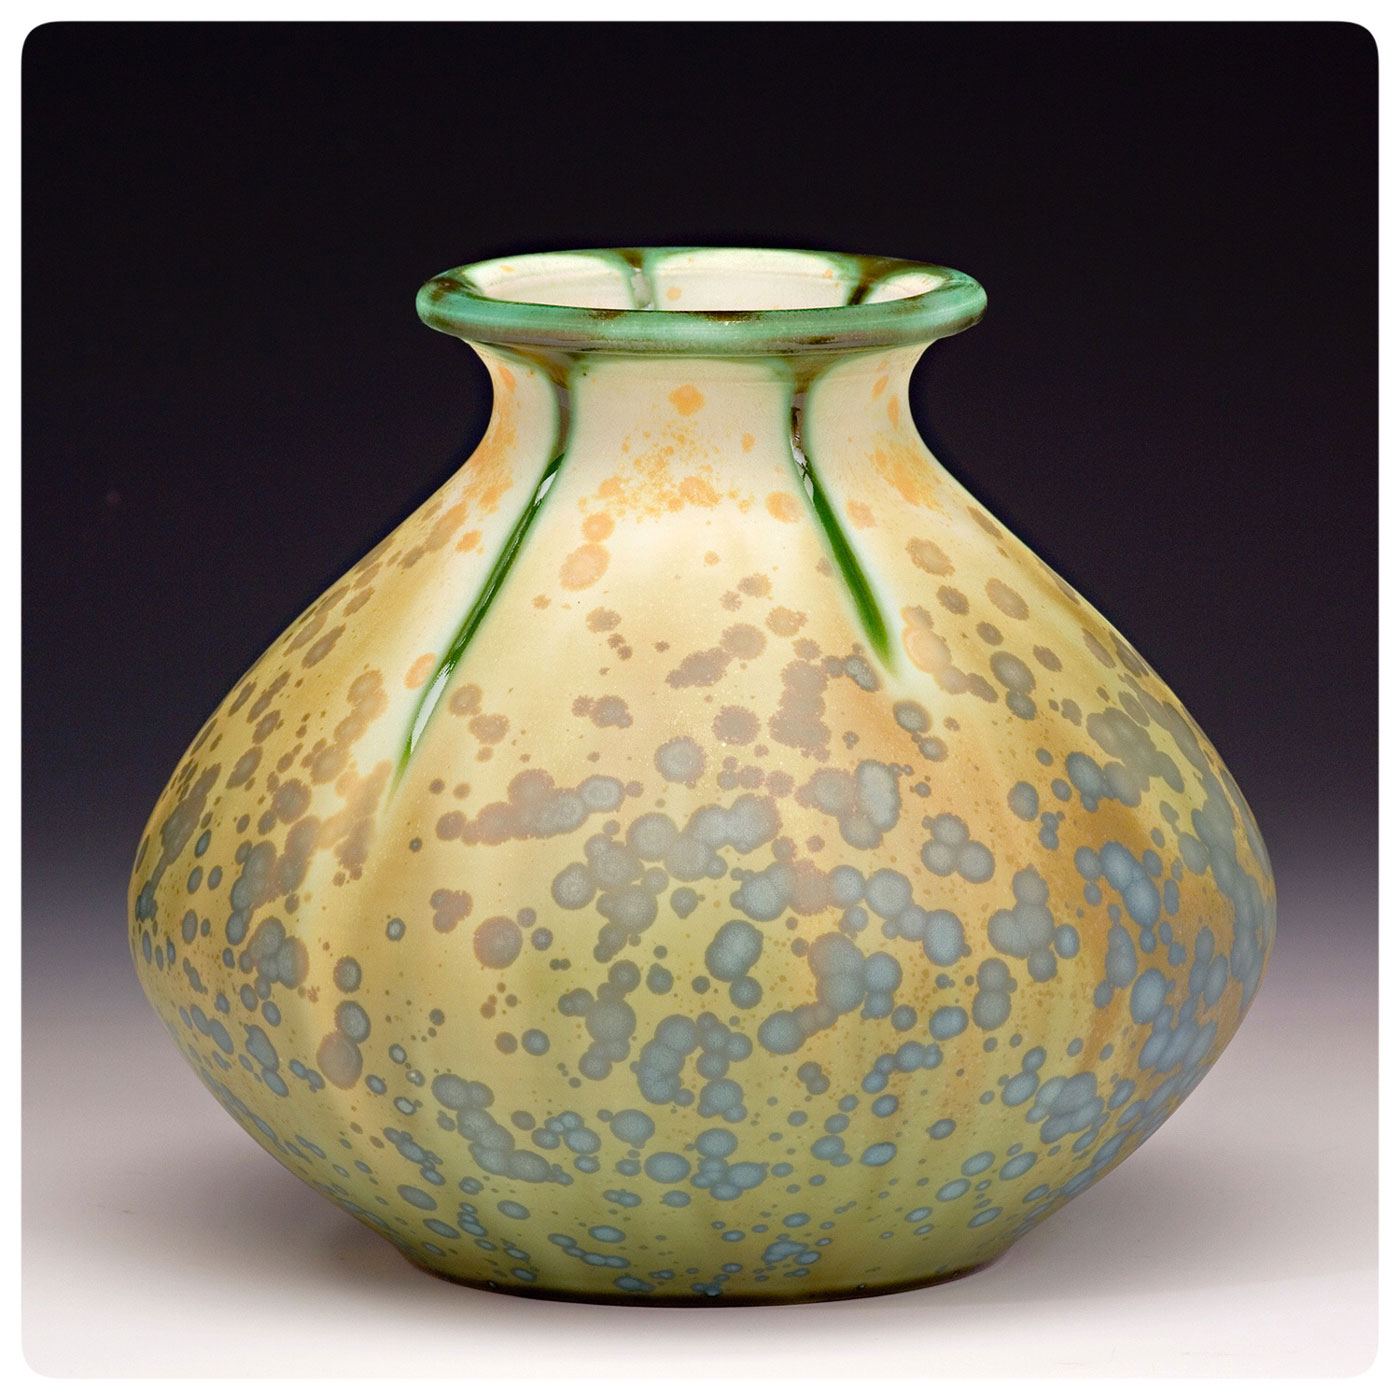 Matte Crystalline Art Pottery Vase made by Bruce Gholson, Seagrove, North Carolina